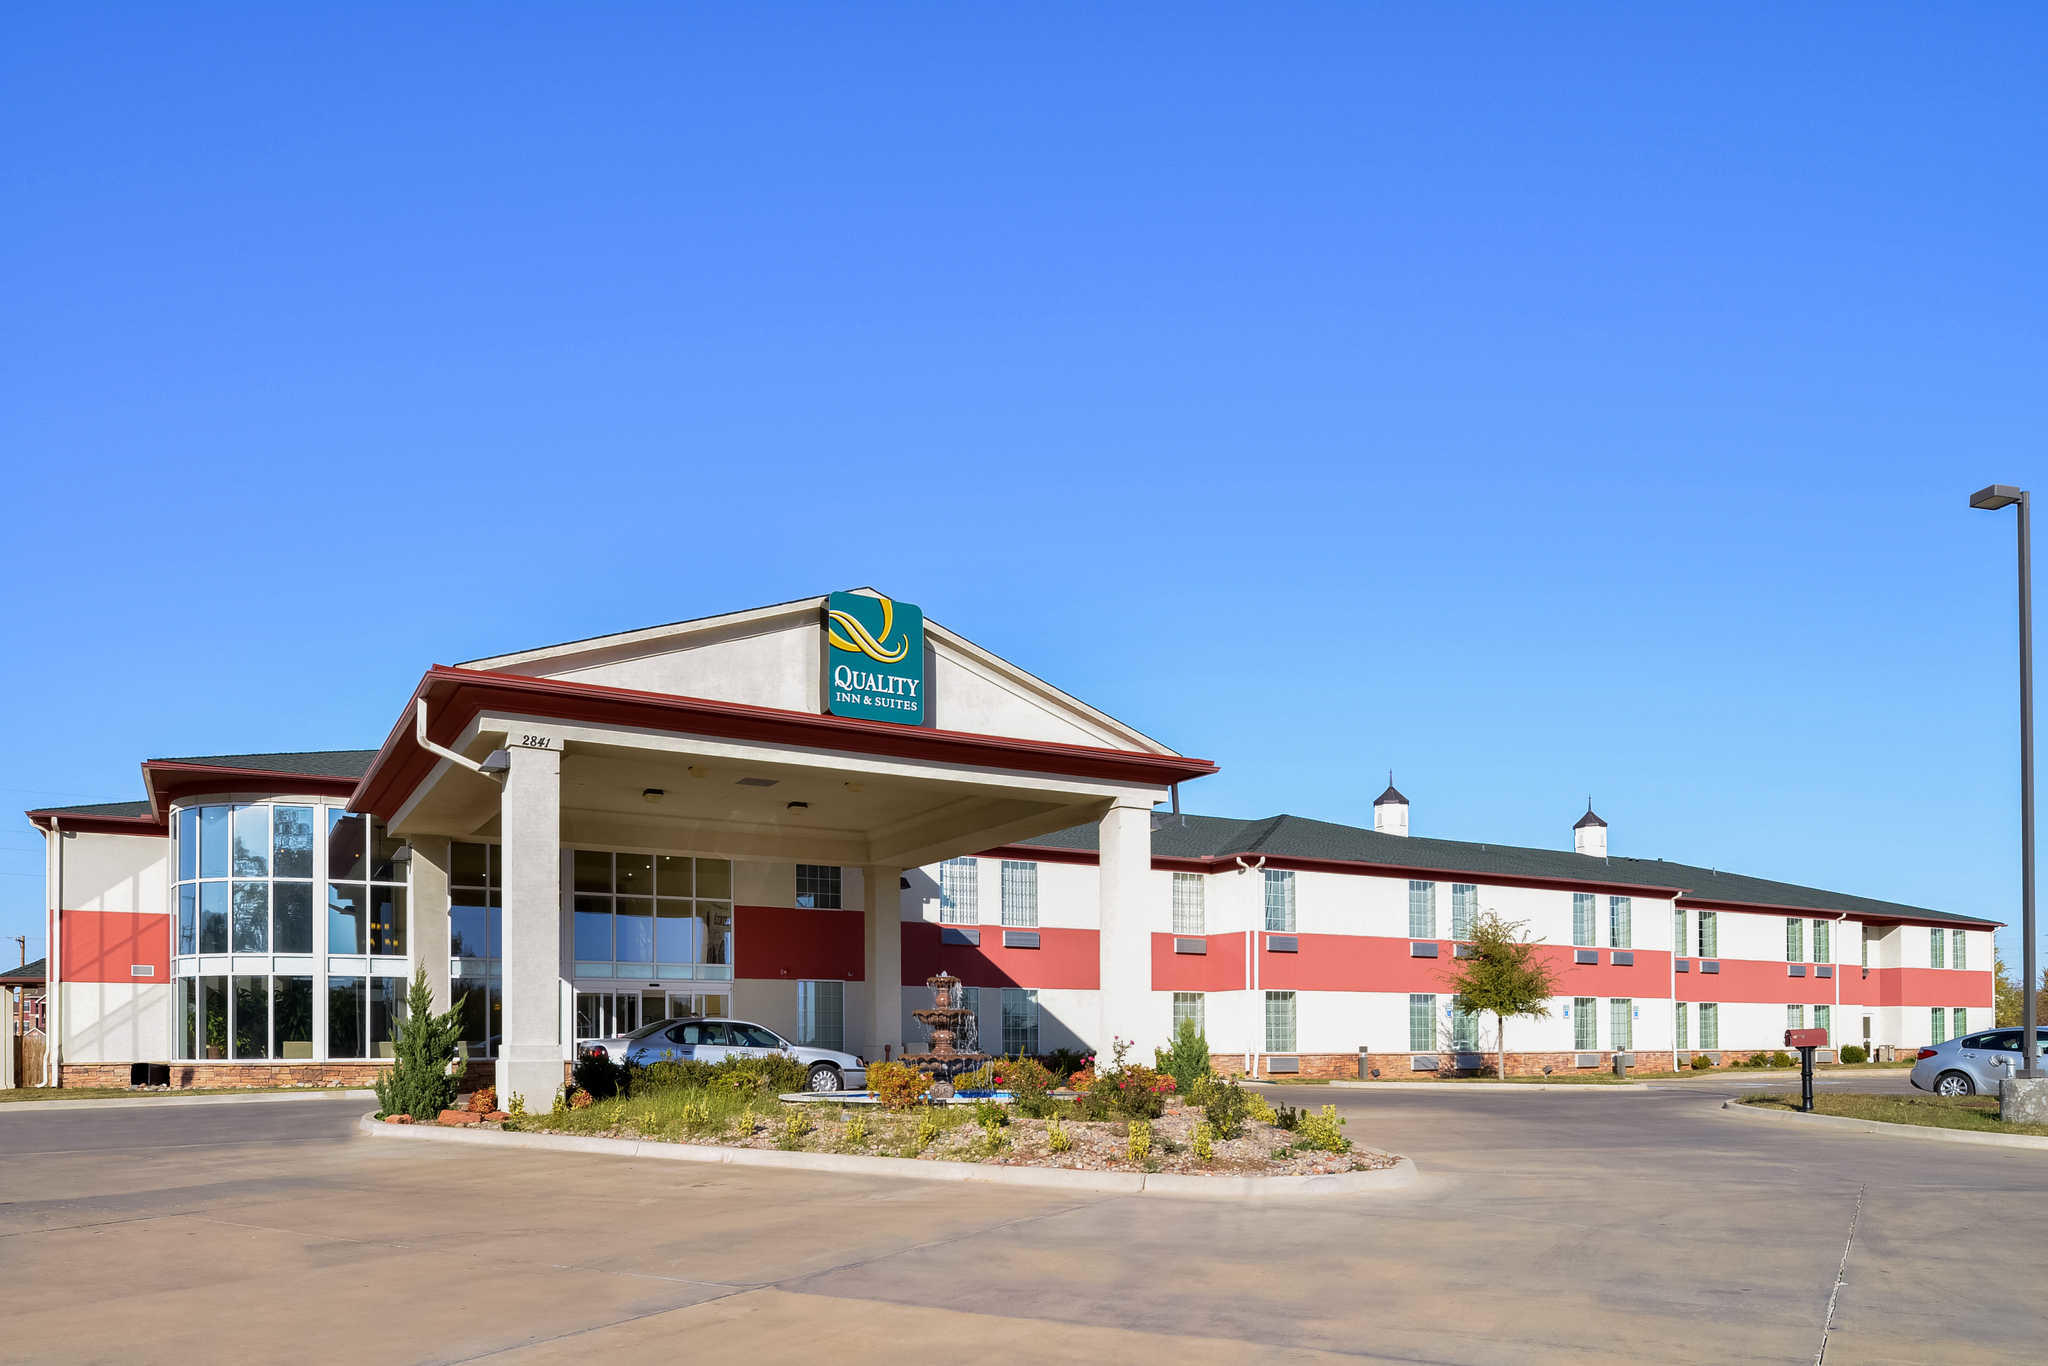 Quality inn suites coupons near me in norman 8coupons for Hotels 8 near me